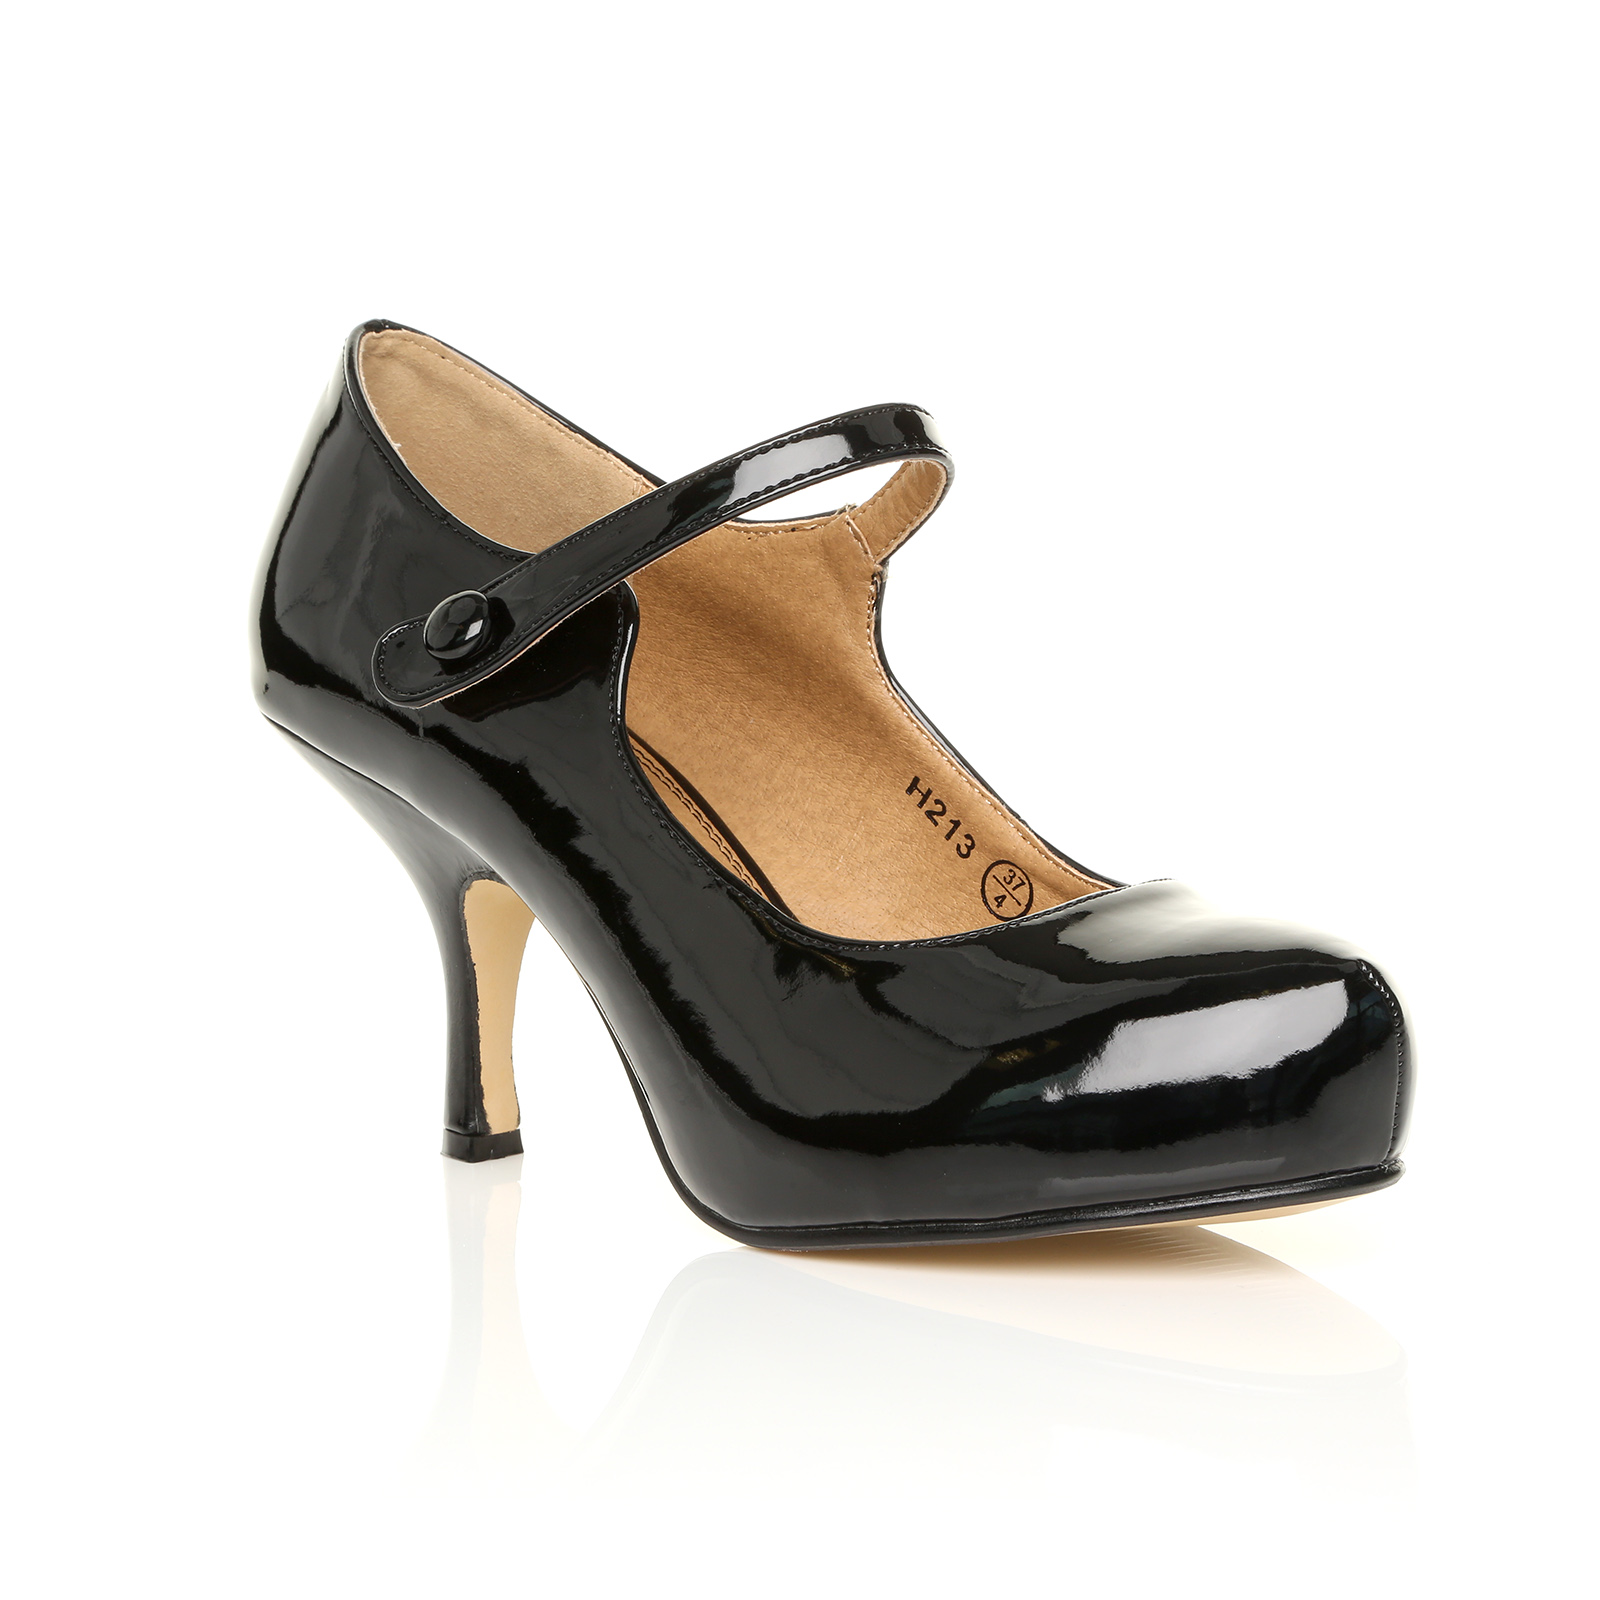 NEW WOMENS STRAP MID HEEL CASUAL SMART WORK PUMP COURT ...